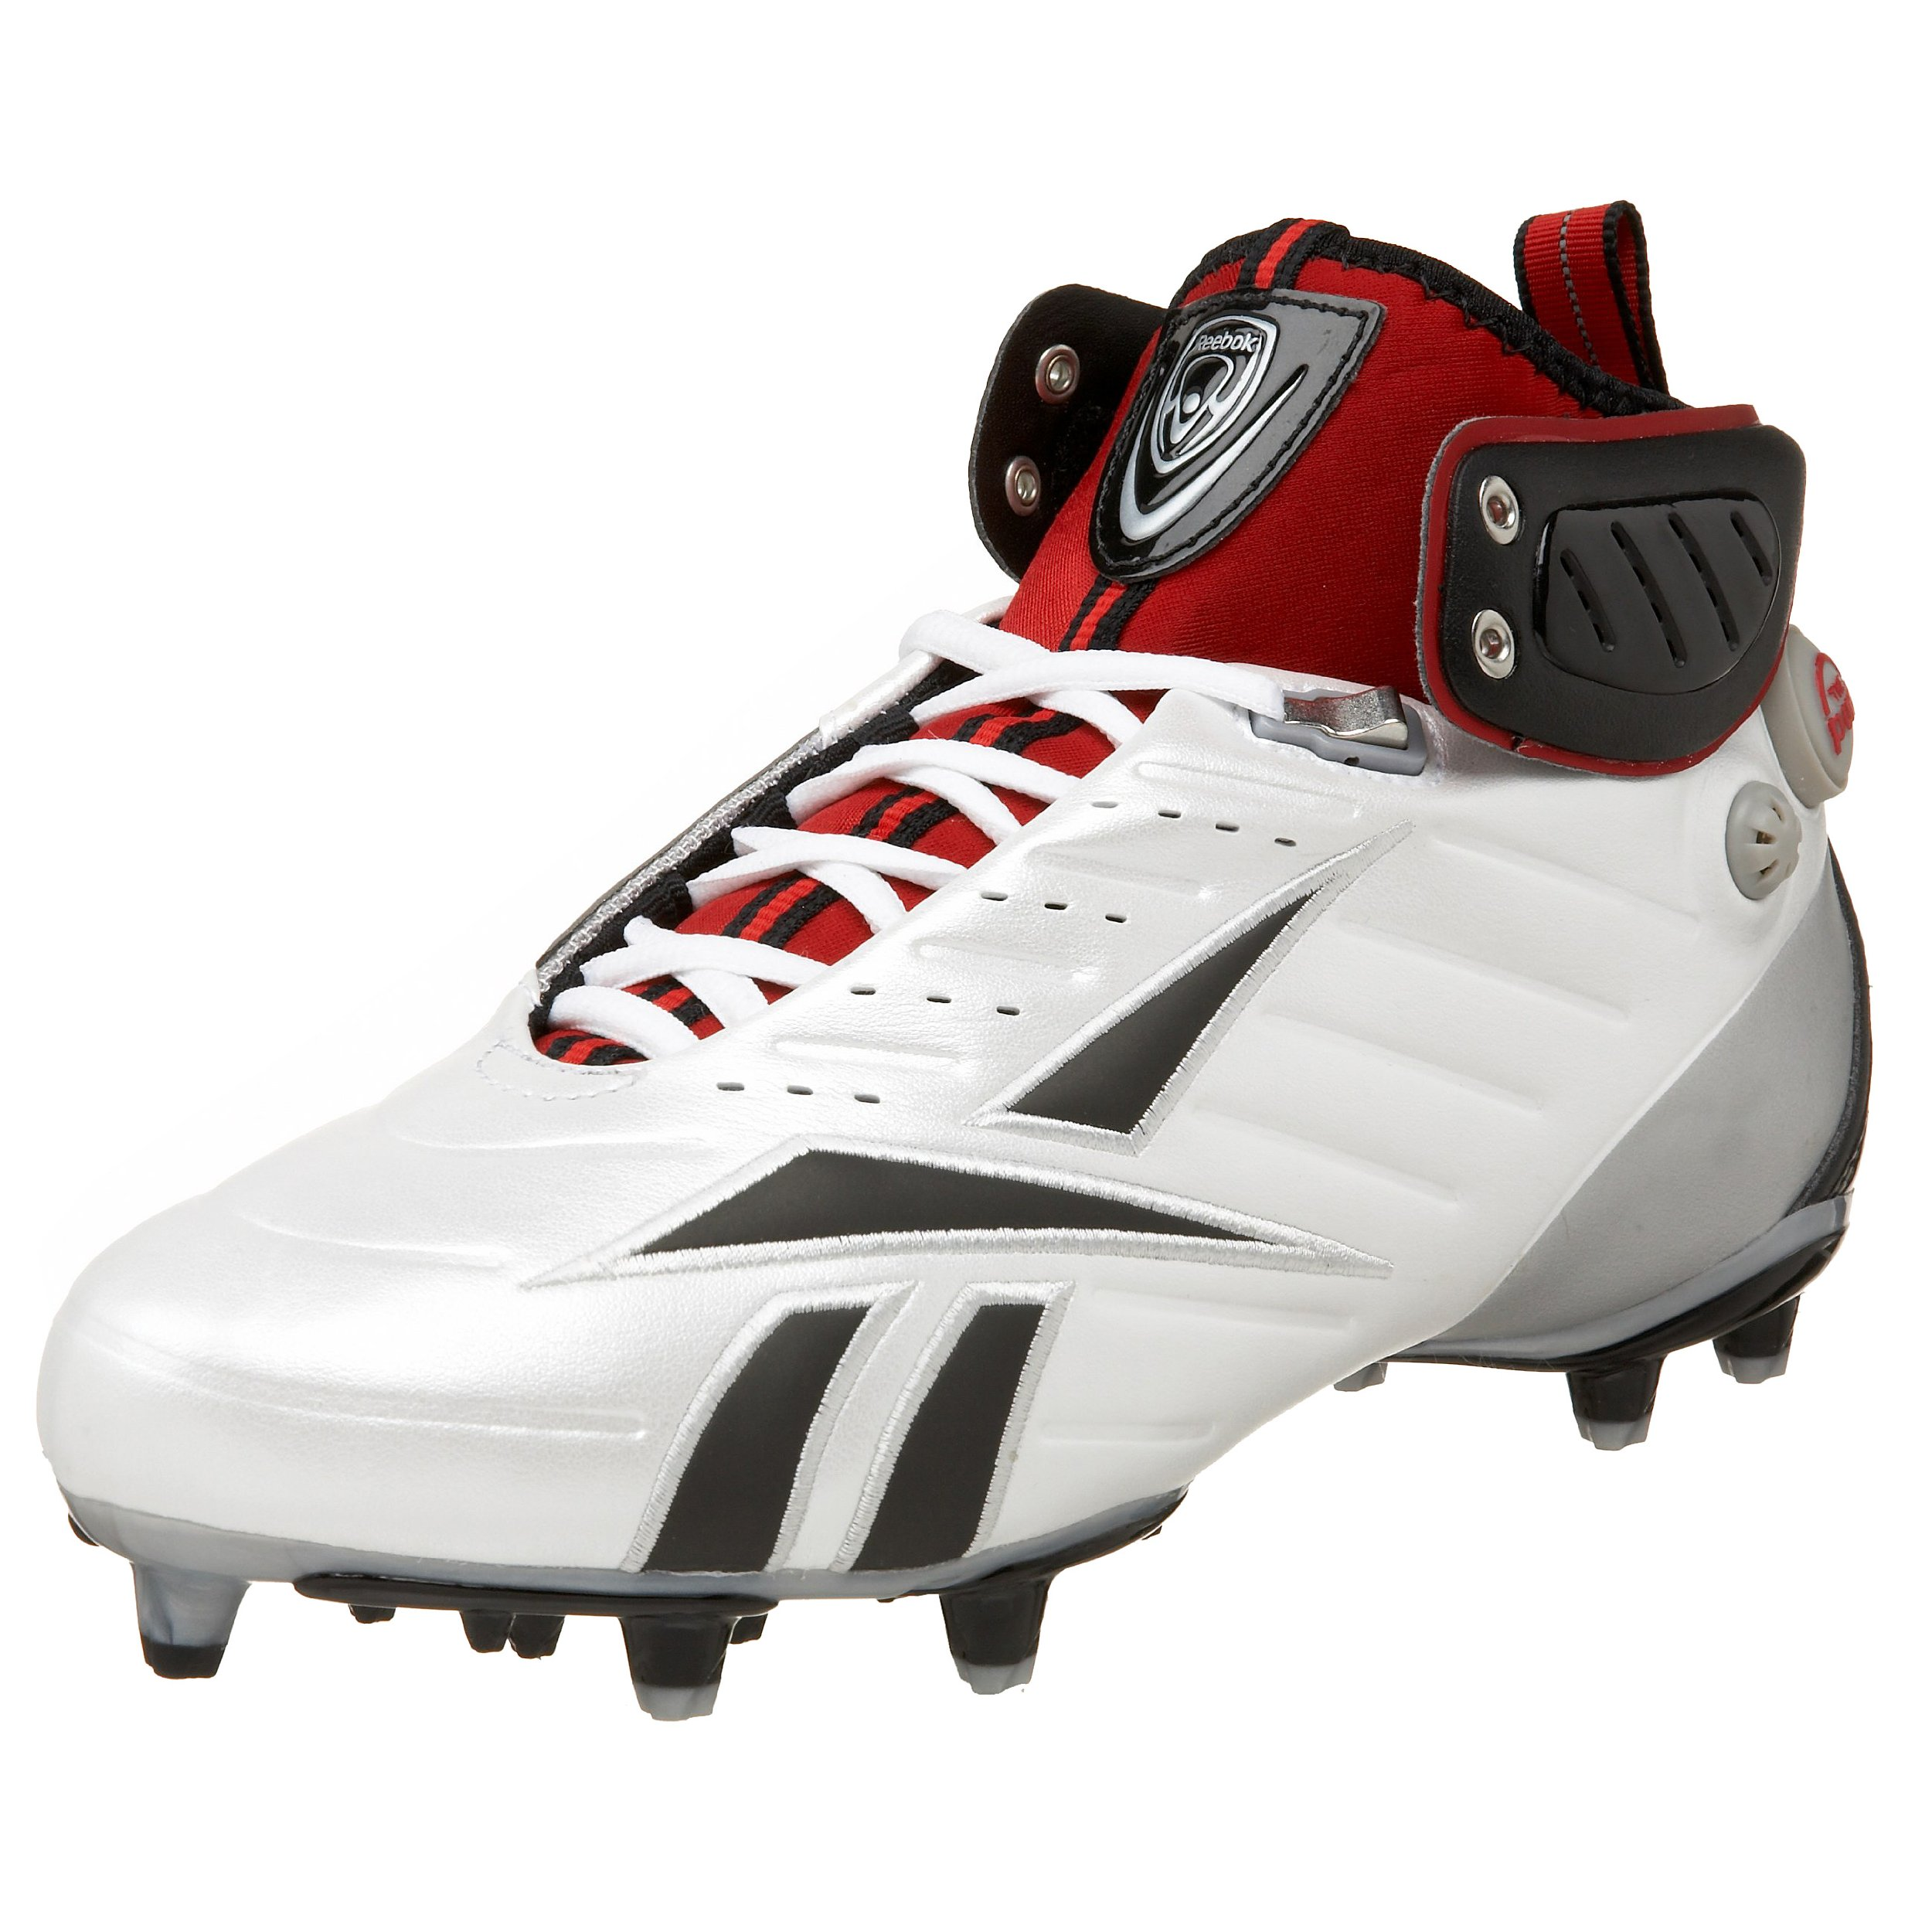 Reebok Men's Pump Bulldodge III M3 Lacrosse Shoe,White/Black/Silver/Red,12 M US